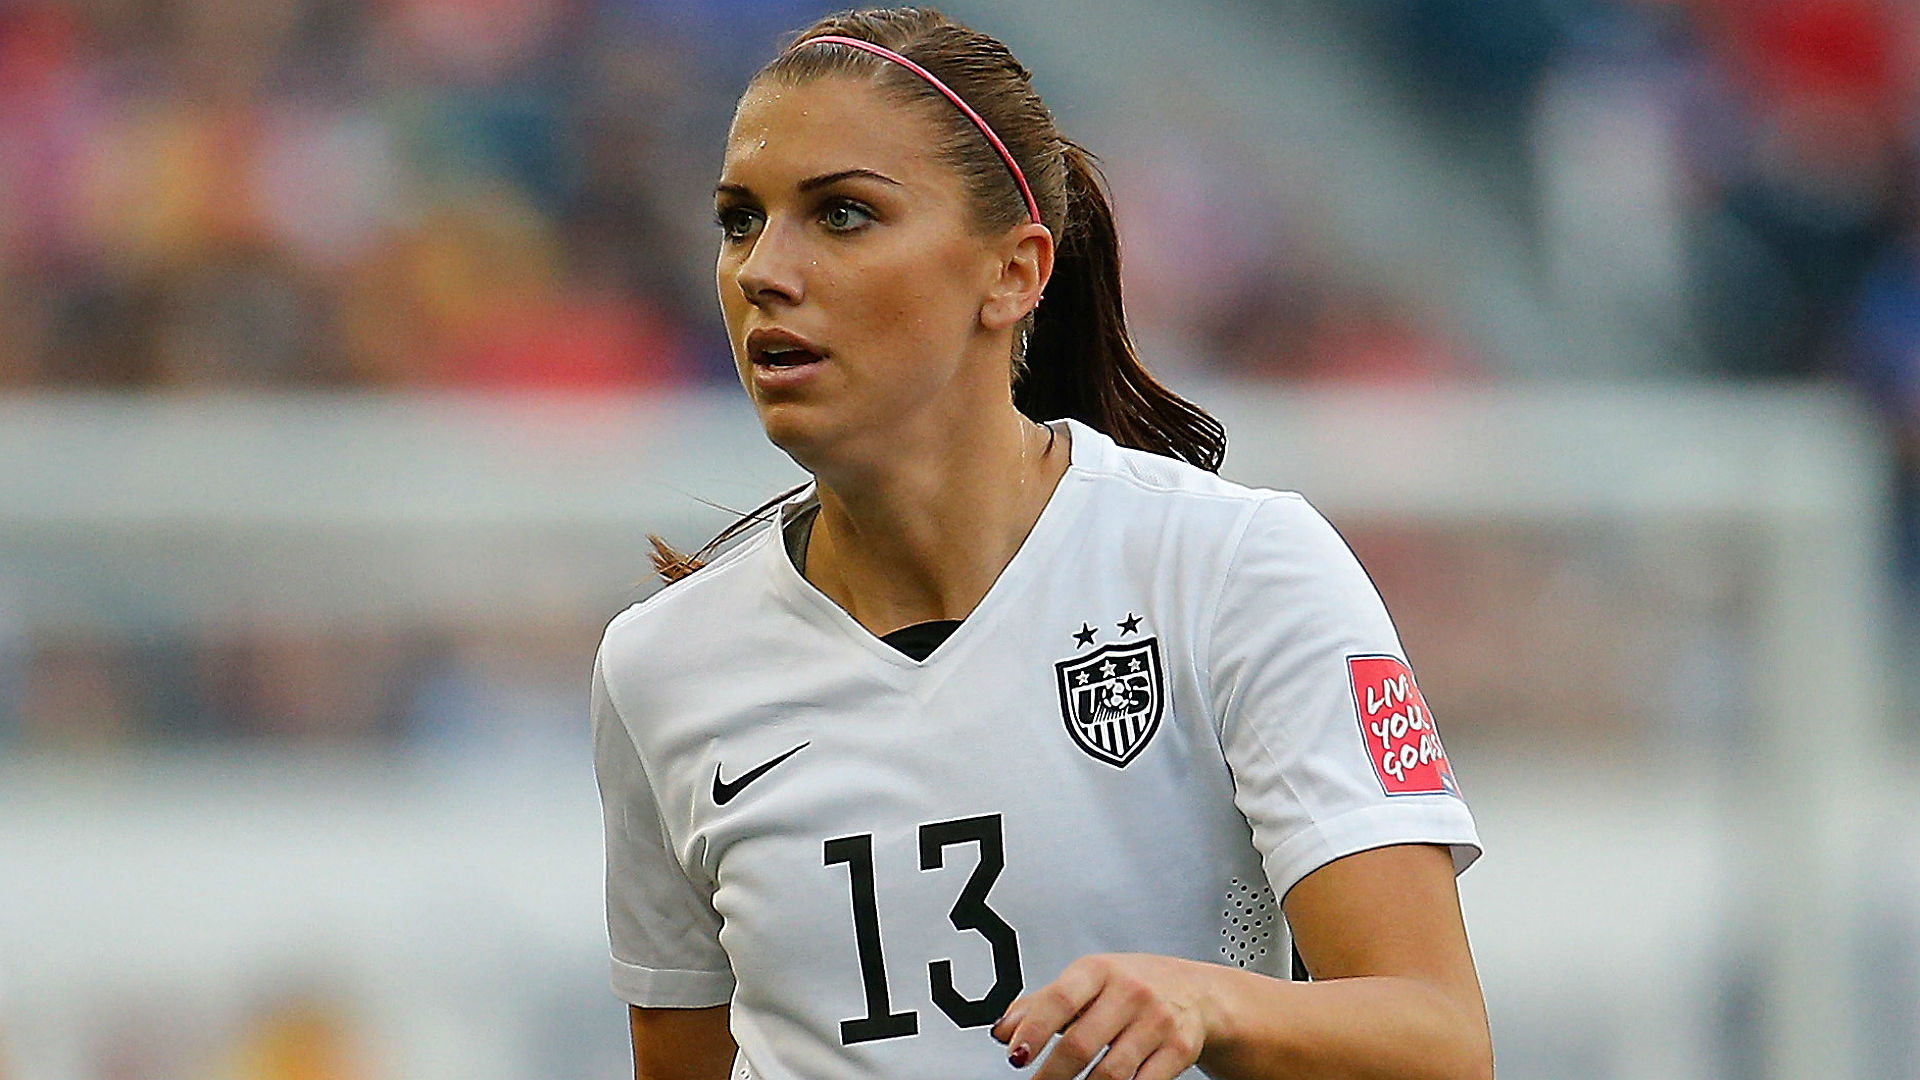 Women's Soccer stars Alex Morgan, Abby Wambach poised to score big on Madison Avenue